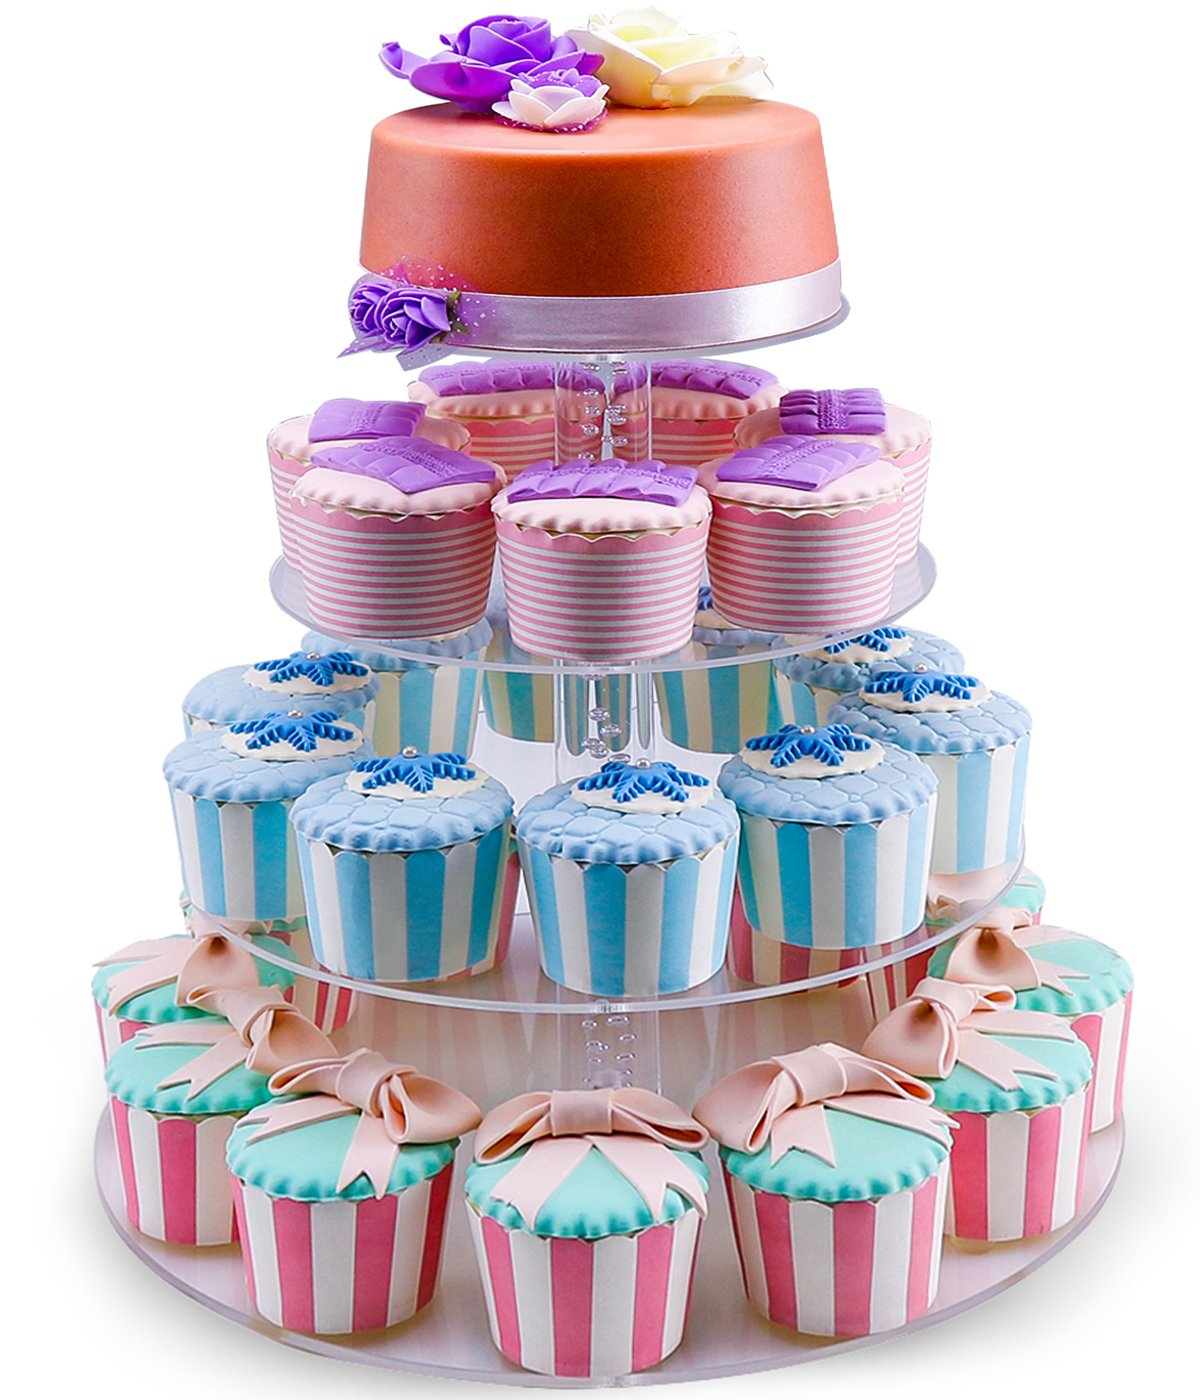 NewCrea Cupcake Stand,4 tier Cake Holder For Birthday,Wedding,Christmas Party,Clear,Acrylic CCS-4R03